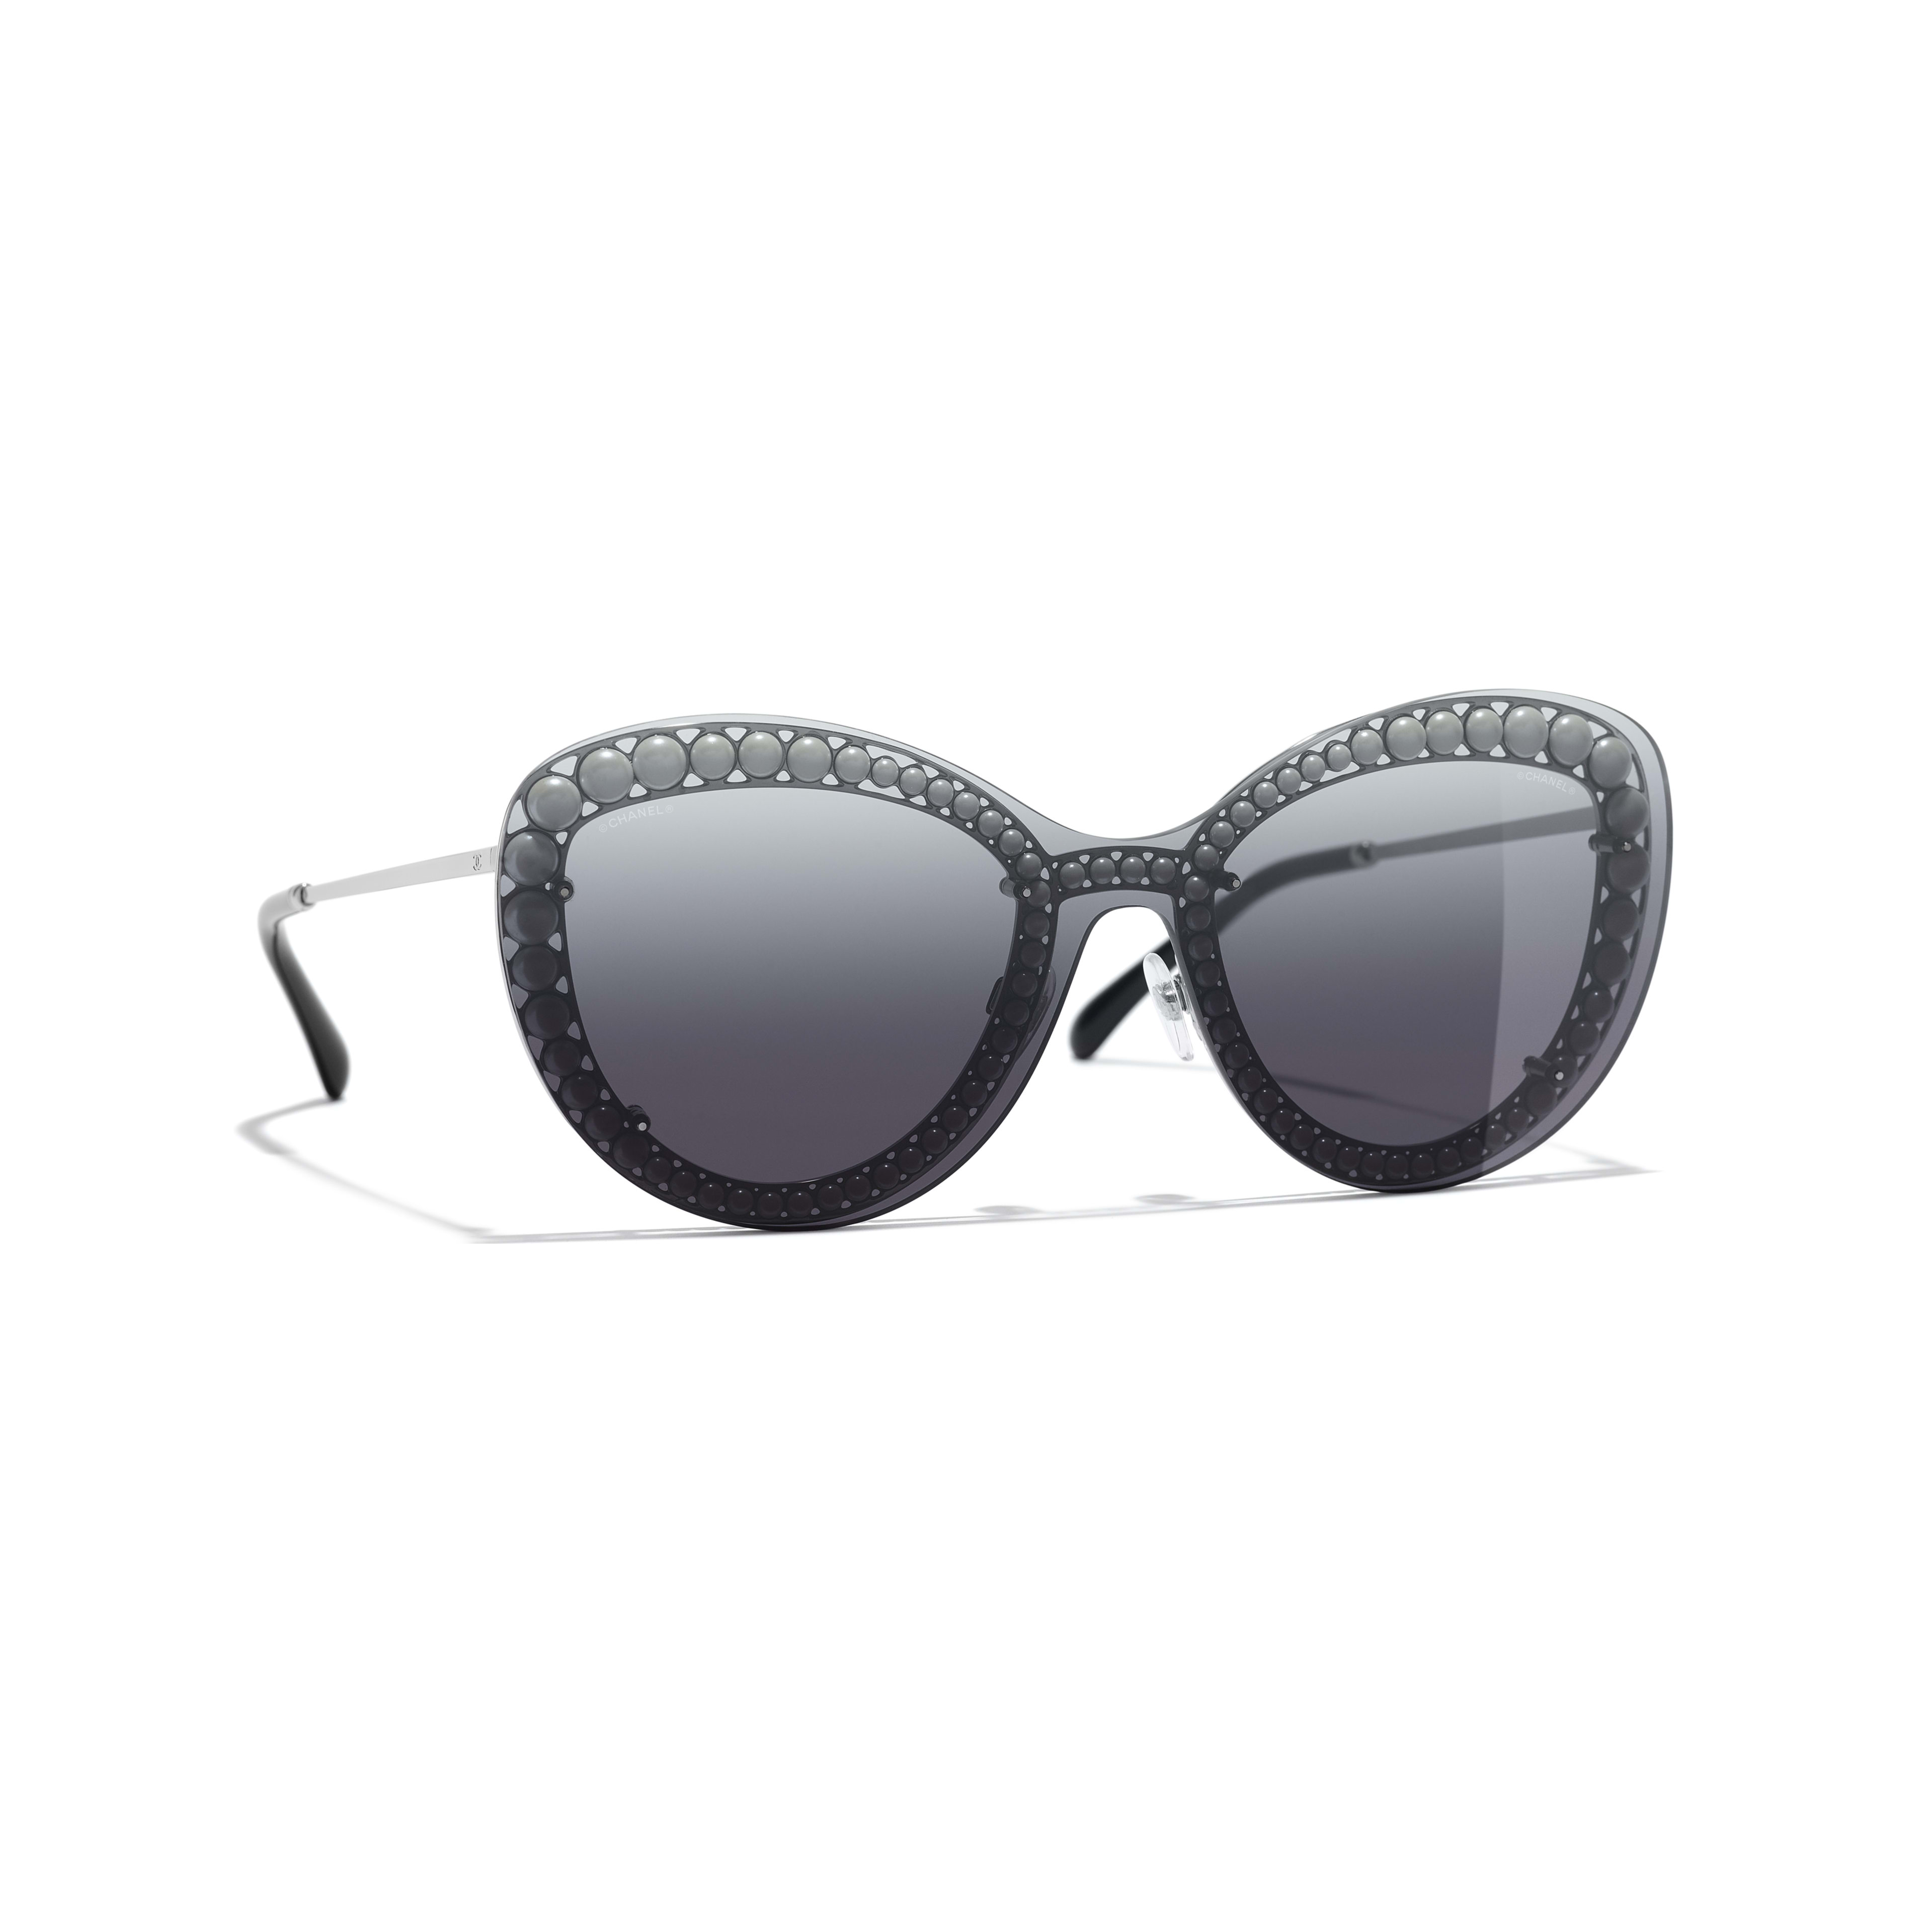 bfbb4098e391 Butterfly Sunglasses - Silver - Metal   Imitation Pearls - Default view -  see full sized ...